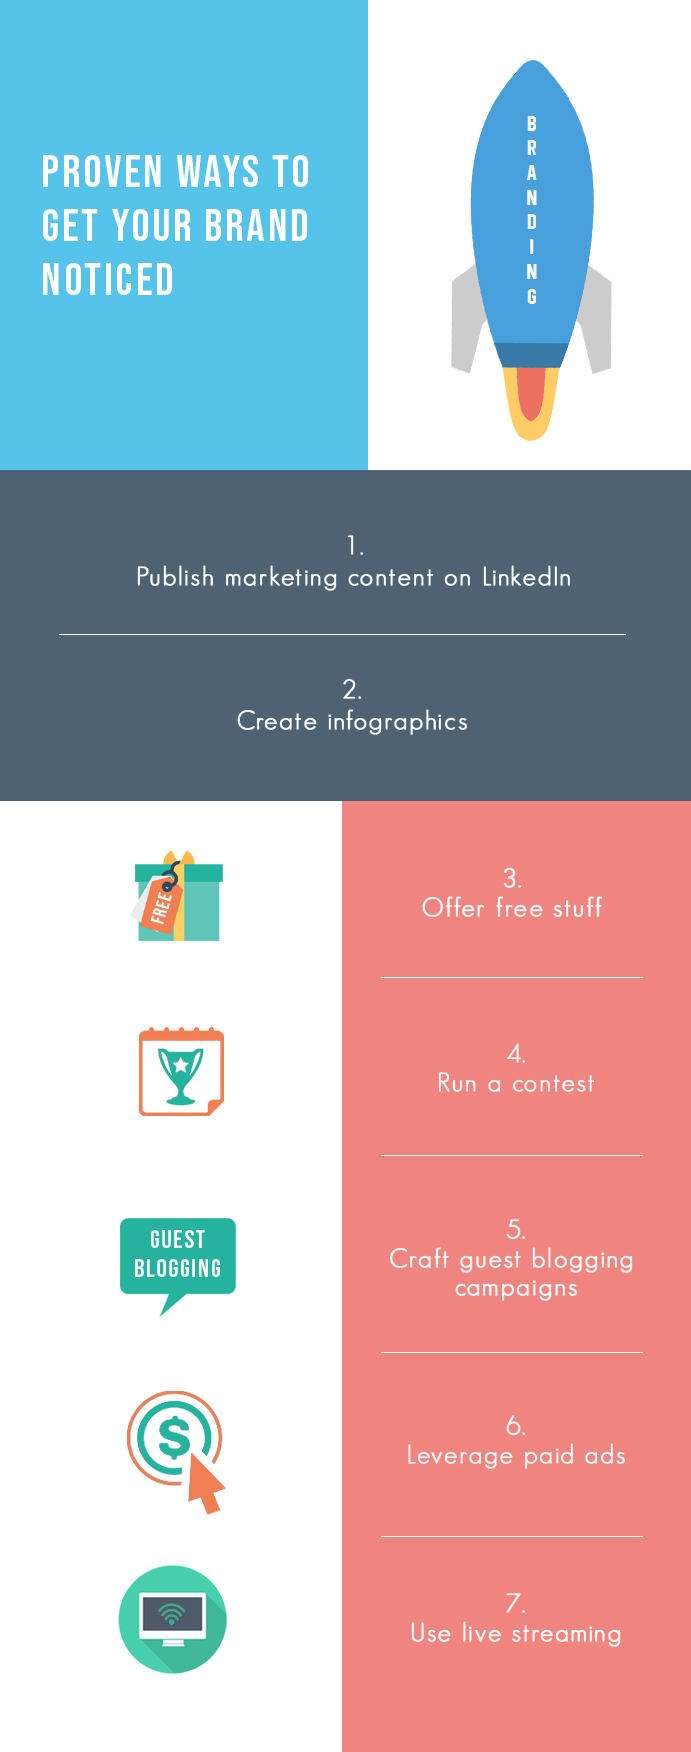 Proven ways to get your brand noticed- Infographic